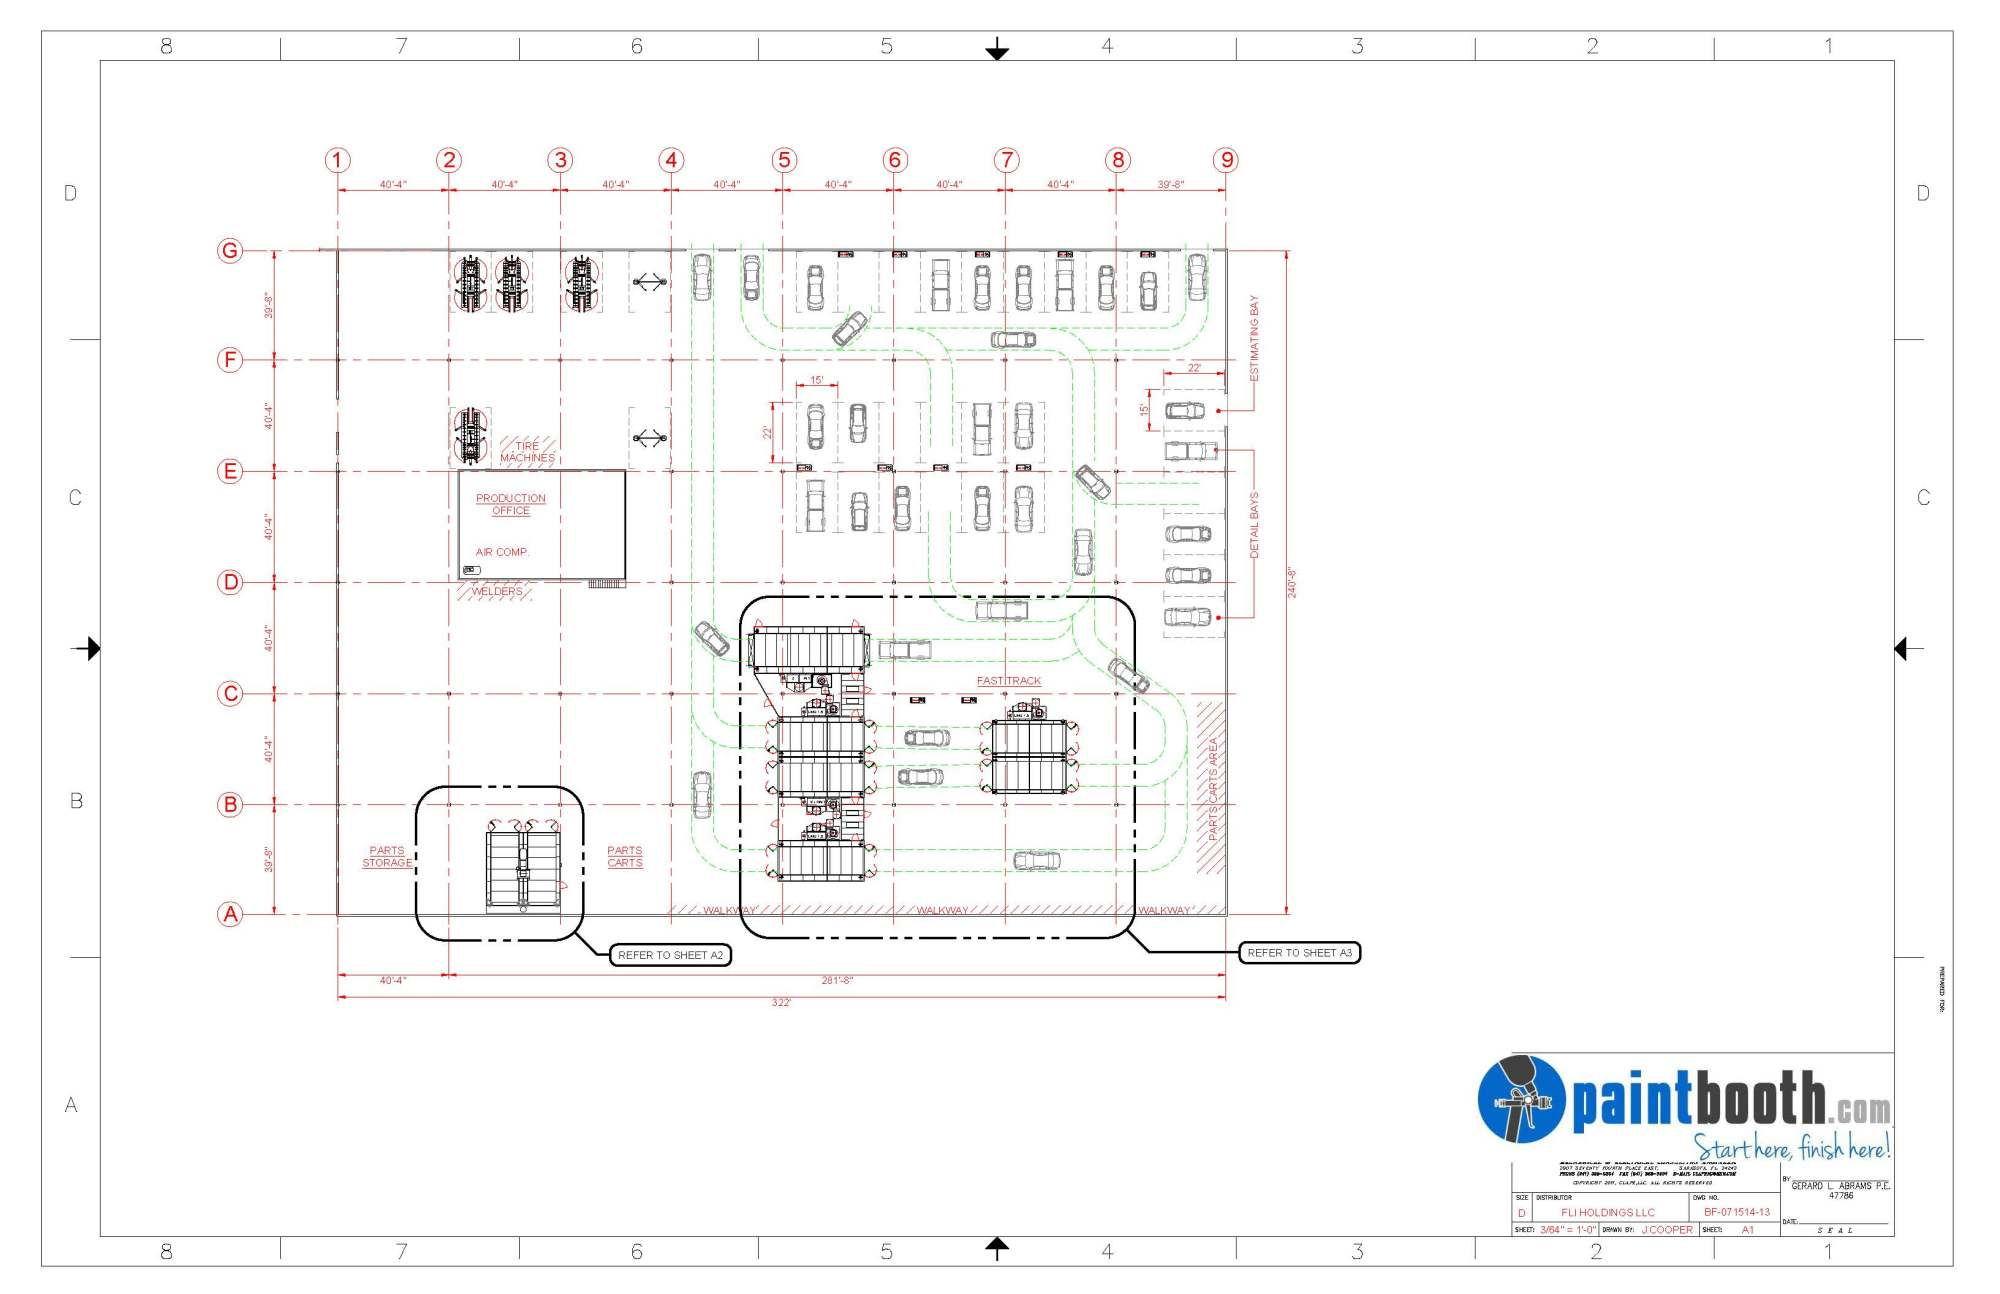 hight resolution of body shop wiring diagram wiring diagram blogpaint booth wiring diagram wiring diagram view body shop wiring